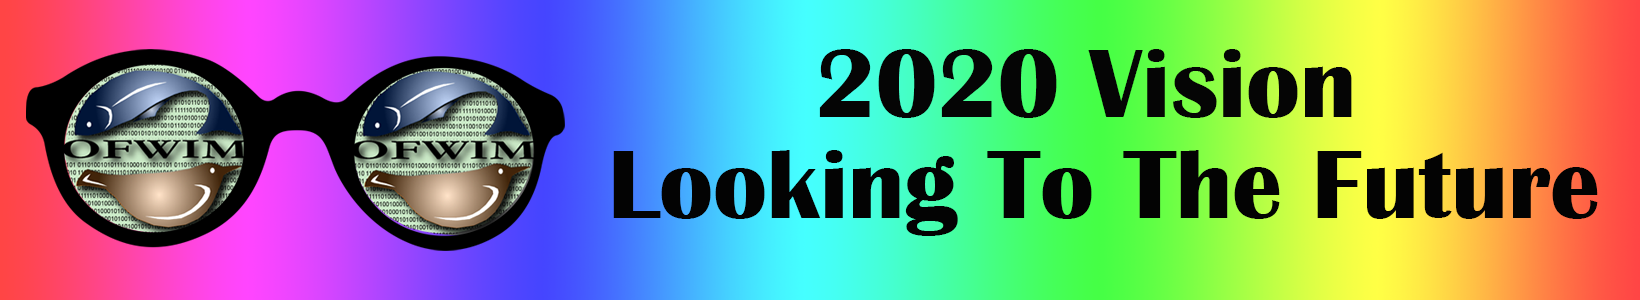 2020 Vision: Looking to the Future